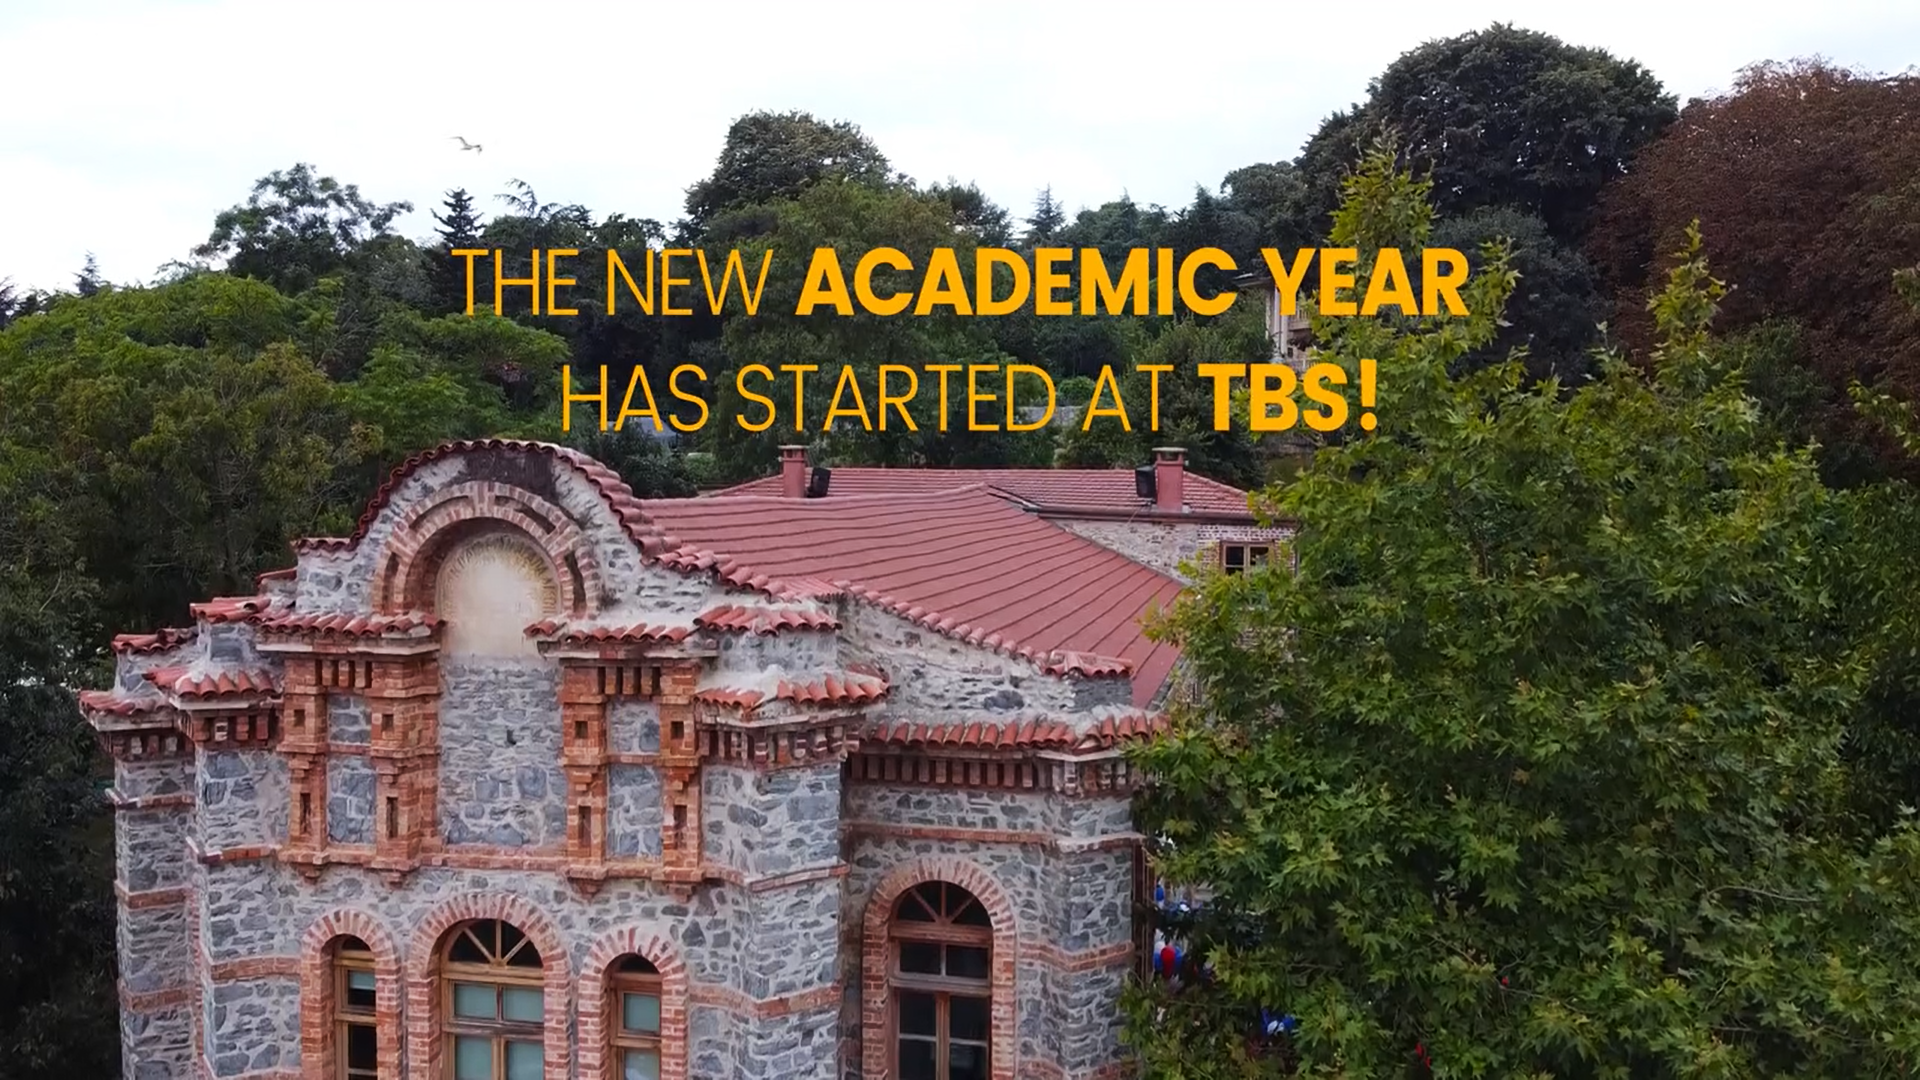 The New Academic Year Has Started at TBS!